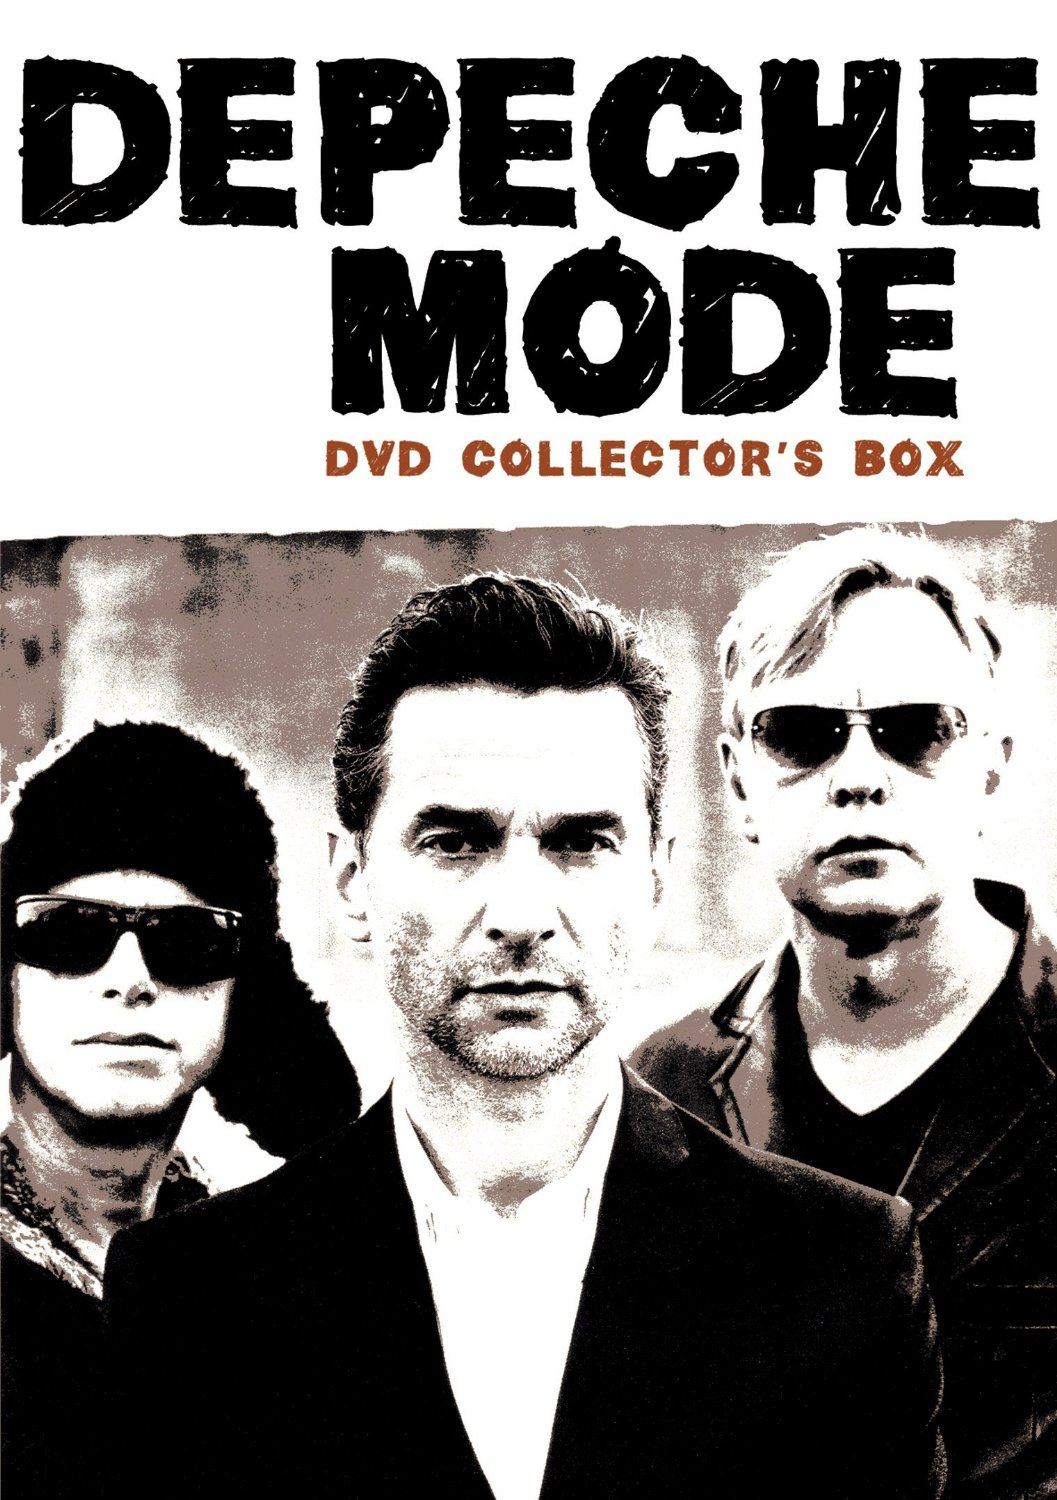 Depeche Mode DVD Collectors Box